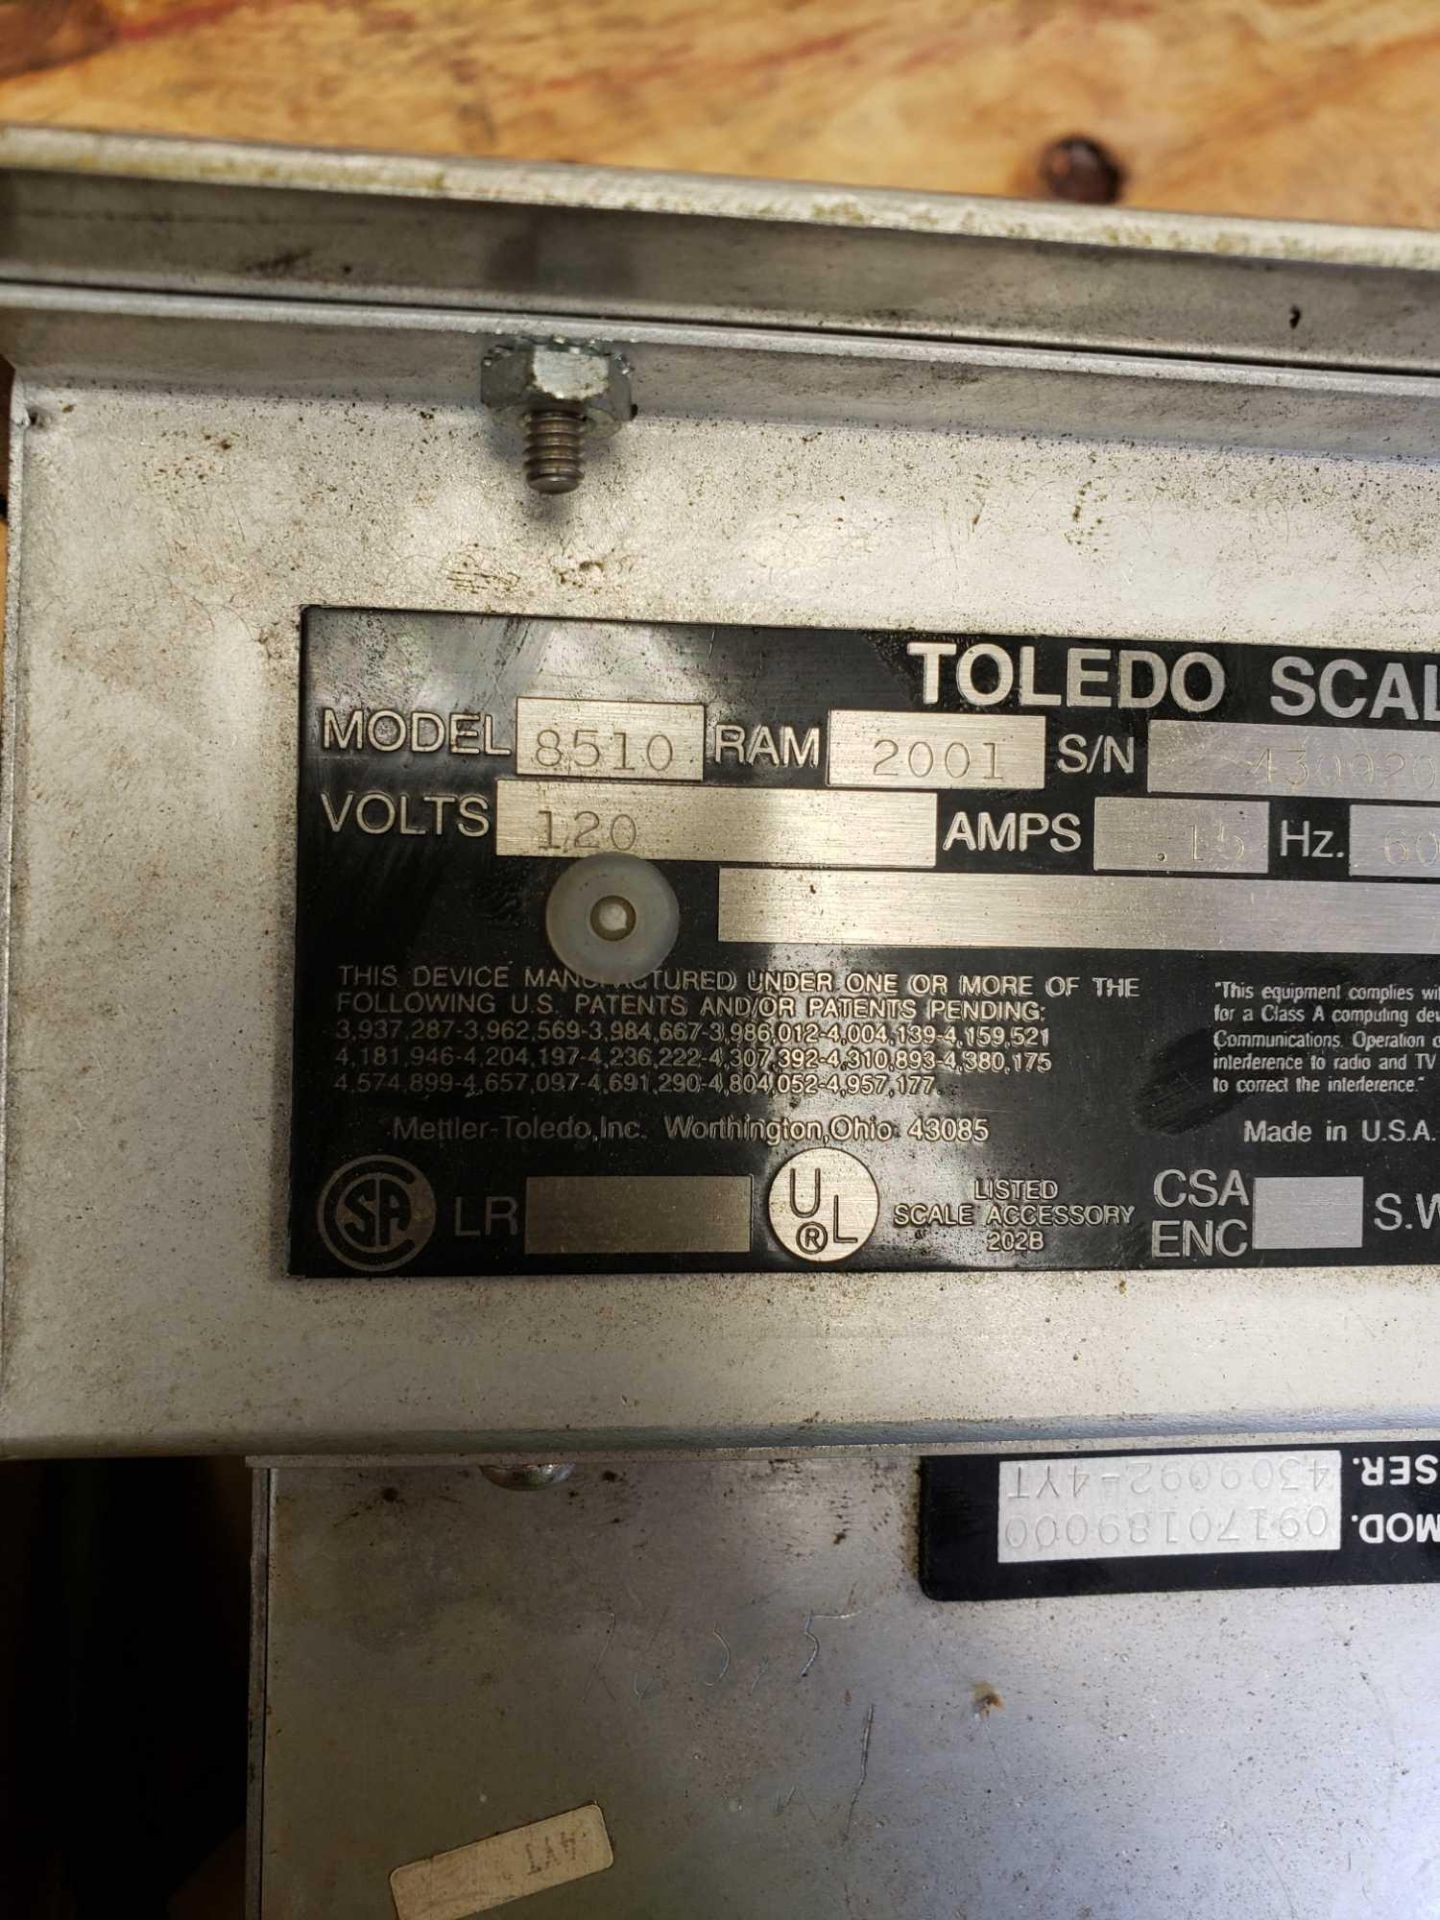 Lot 5 - Toledo scale display model 8510